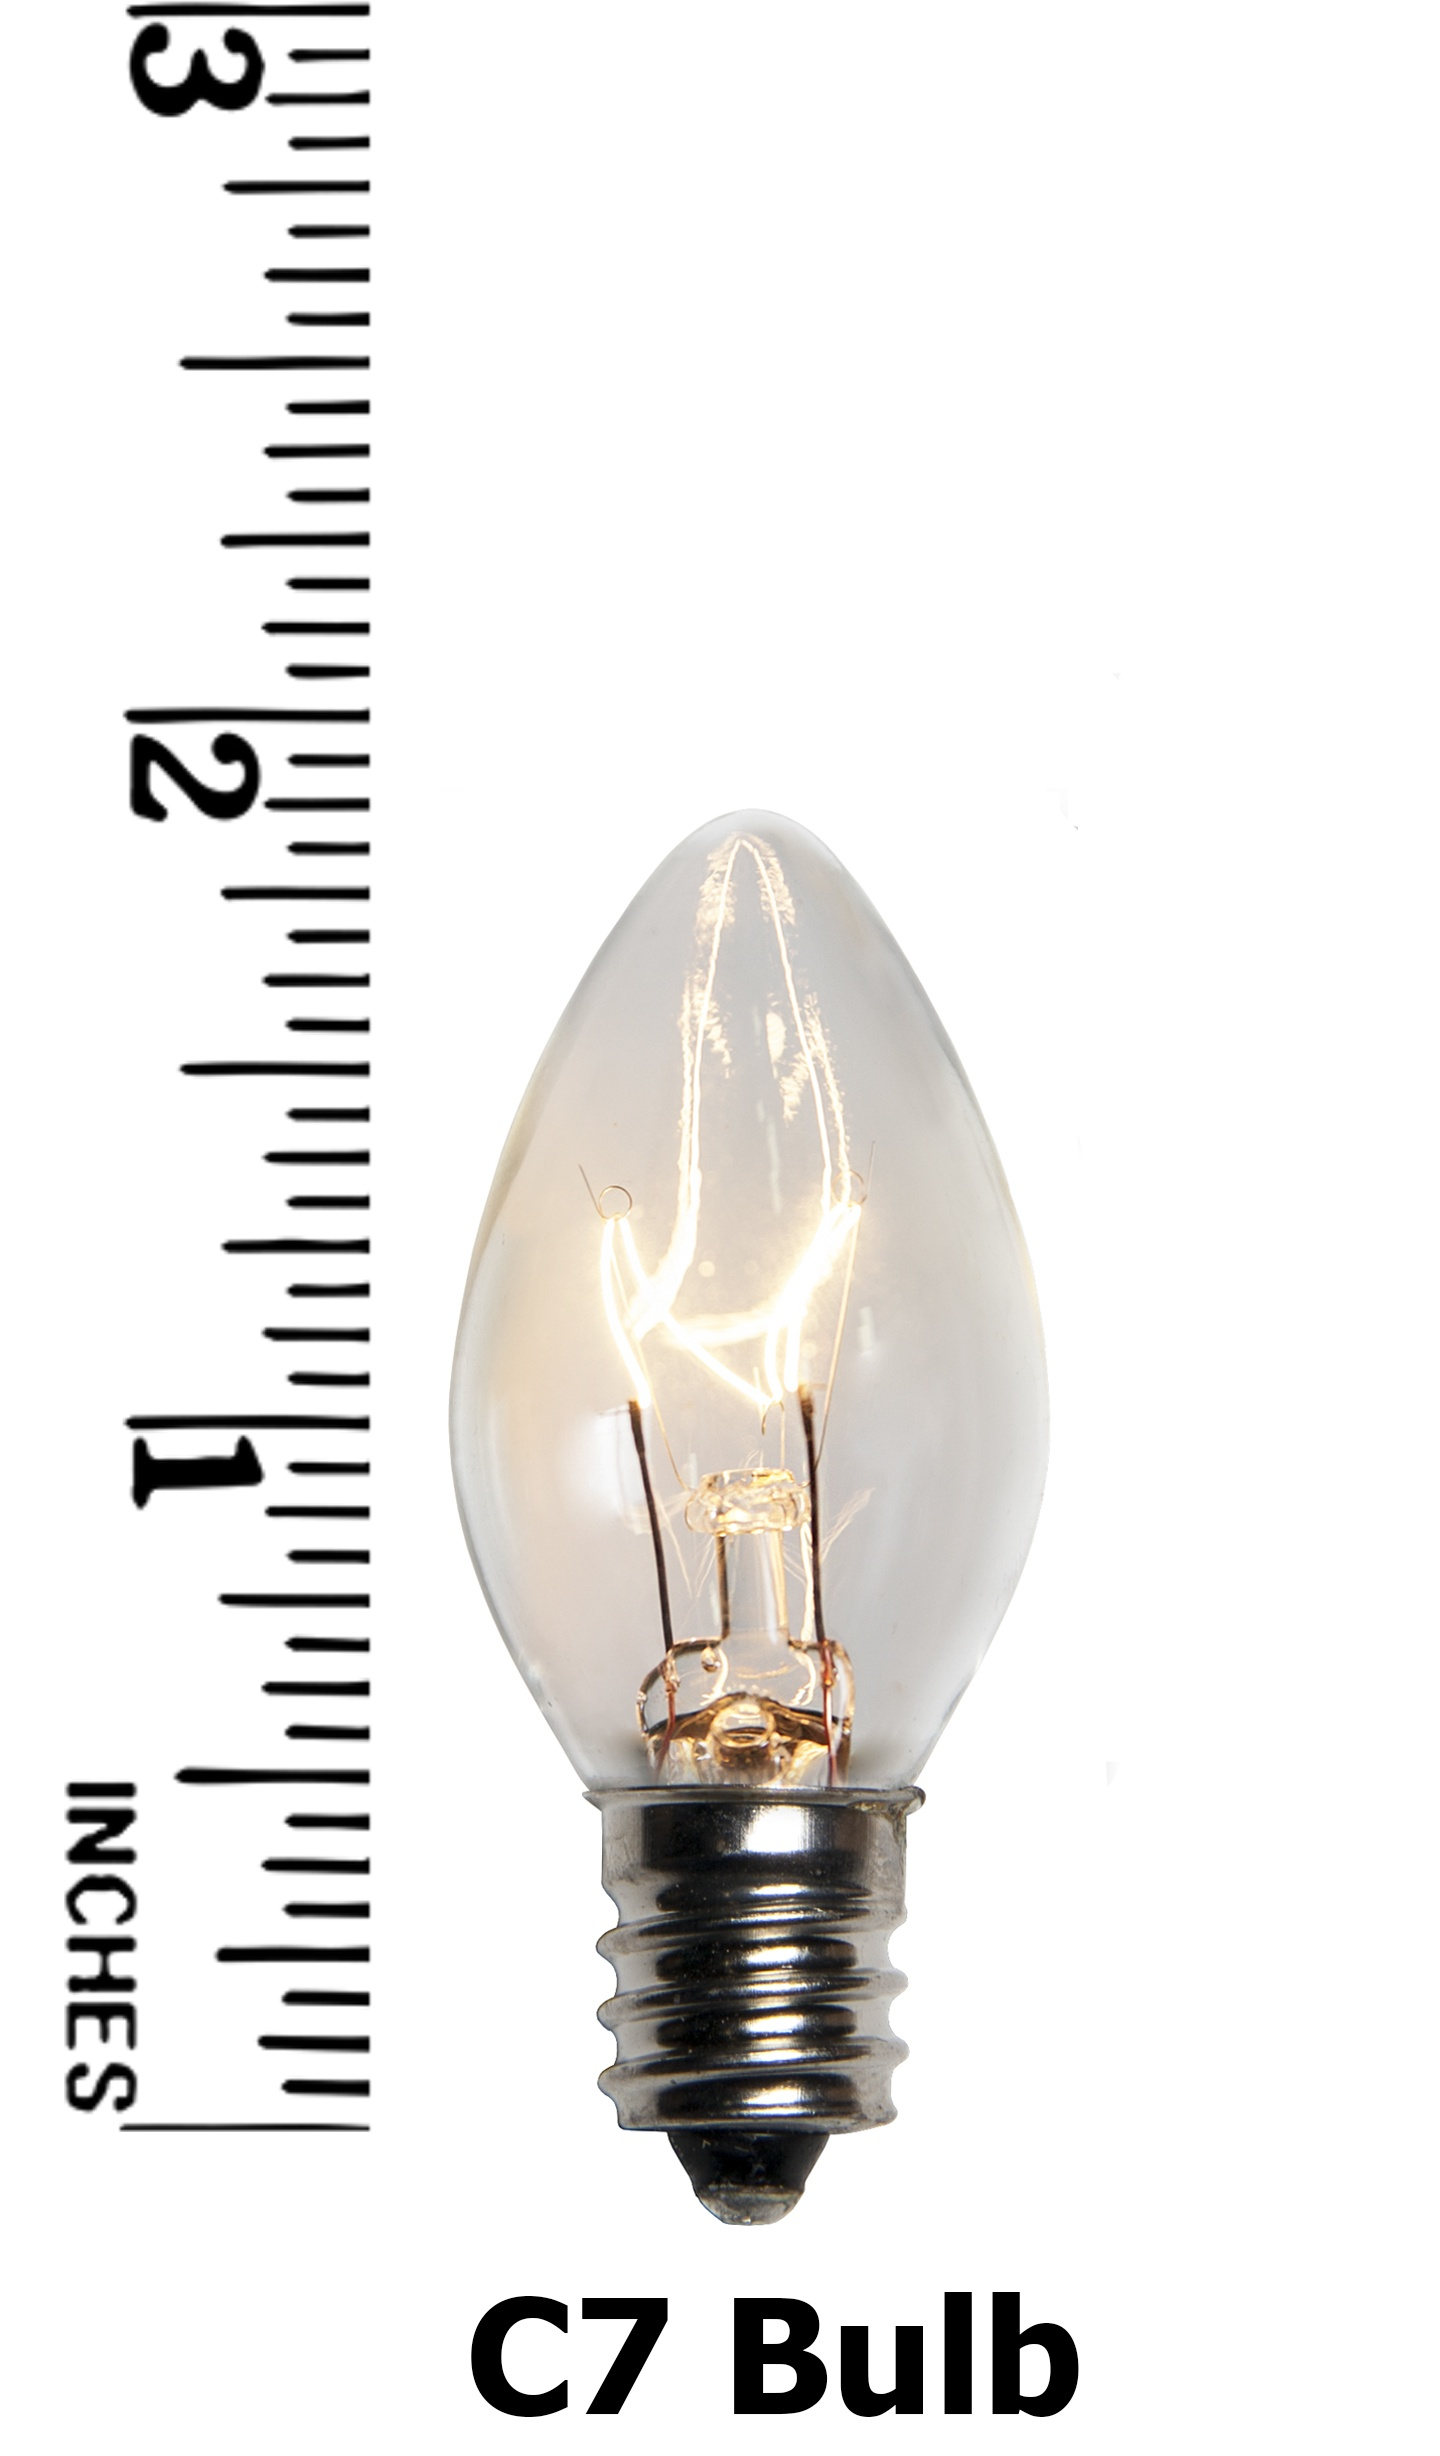 C7 Clear Incandescent Bulb